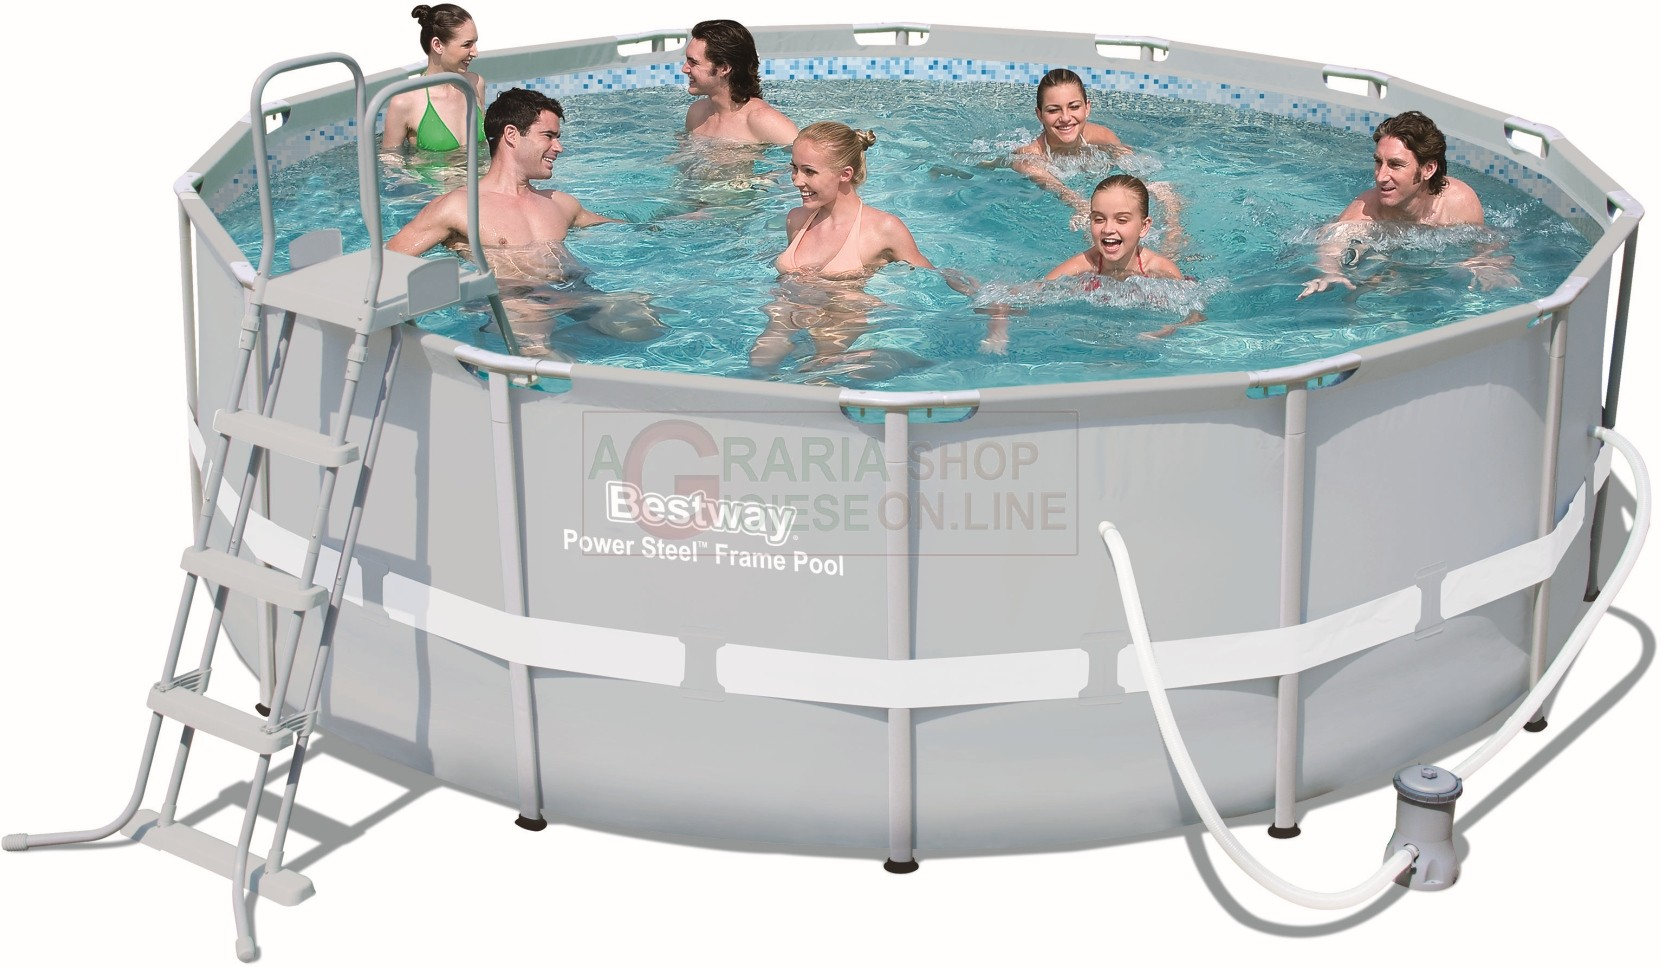 Frame Pool Bestway Bestway 56444 Swimming Pool With A Chassis Power Steel Frame Cm 427x122h